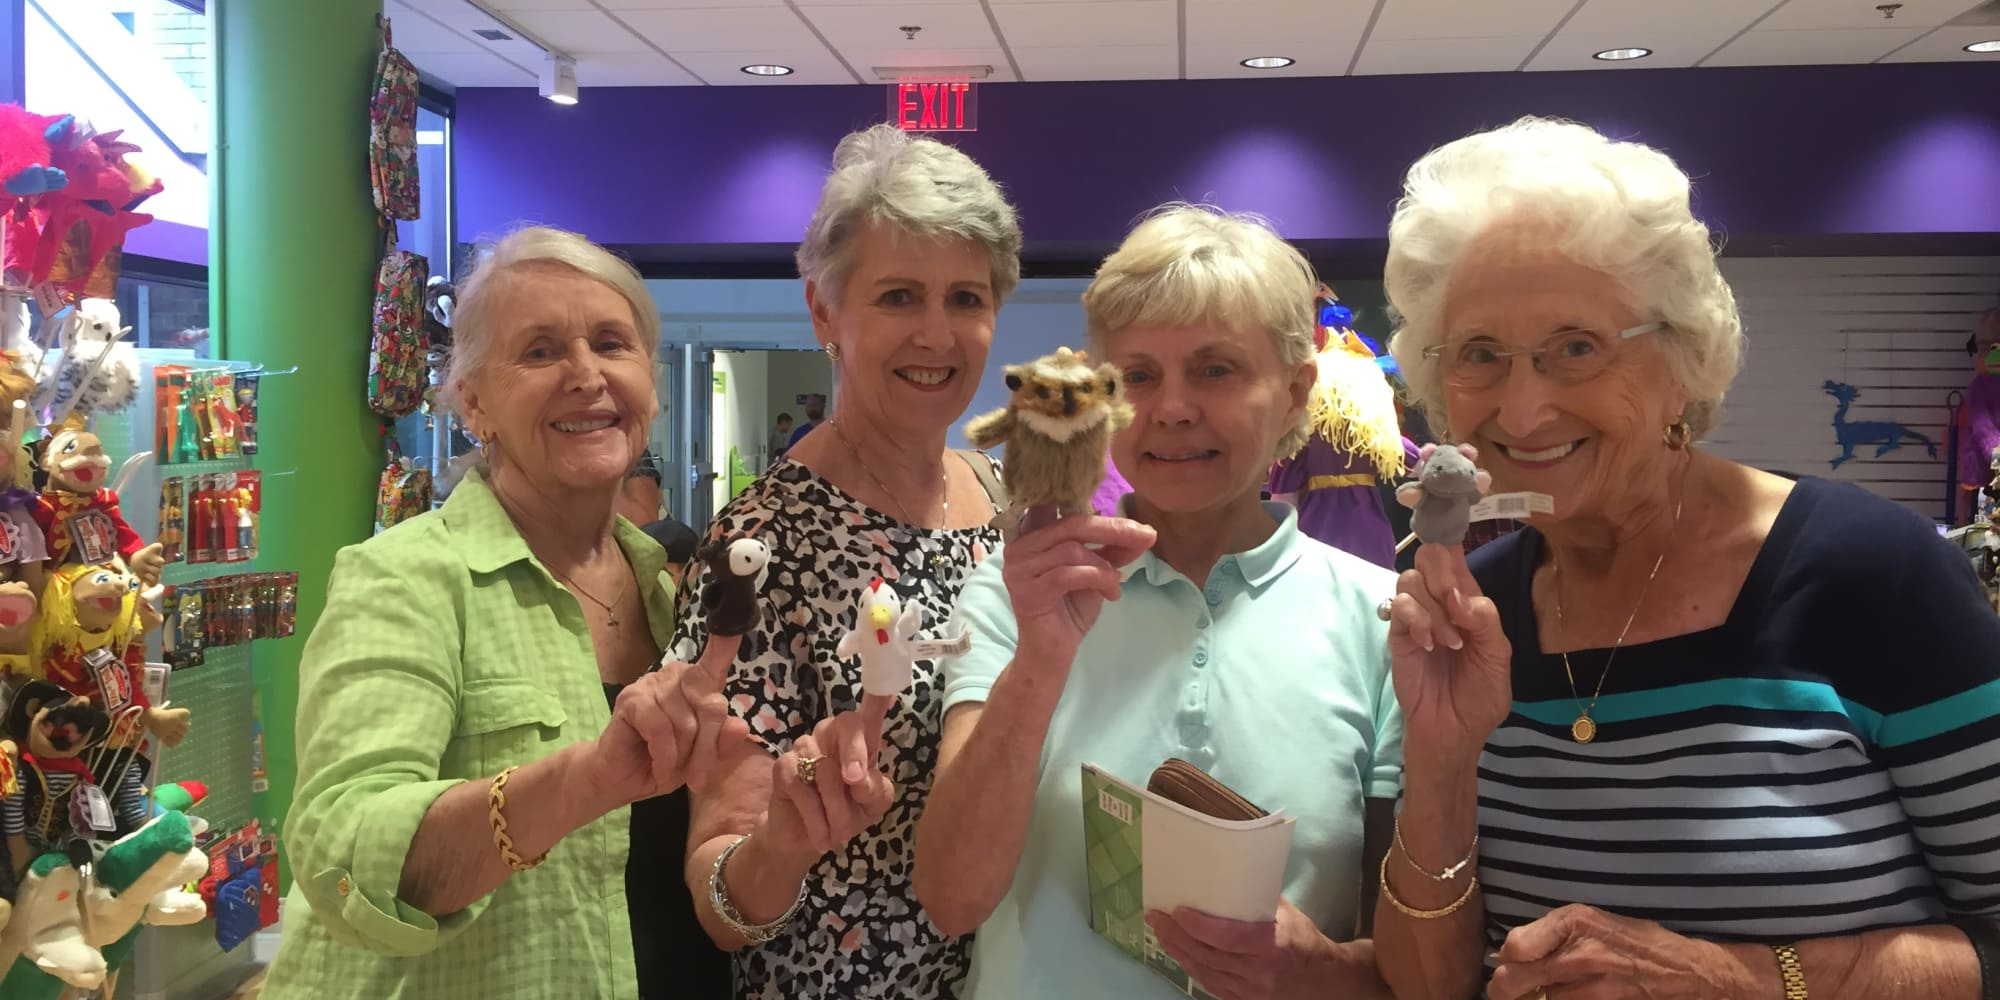 Residents from Scholl Canyon Estates in Glendale, California holding finger puppets in a store